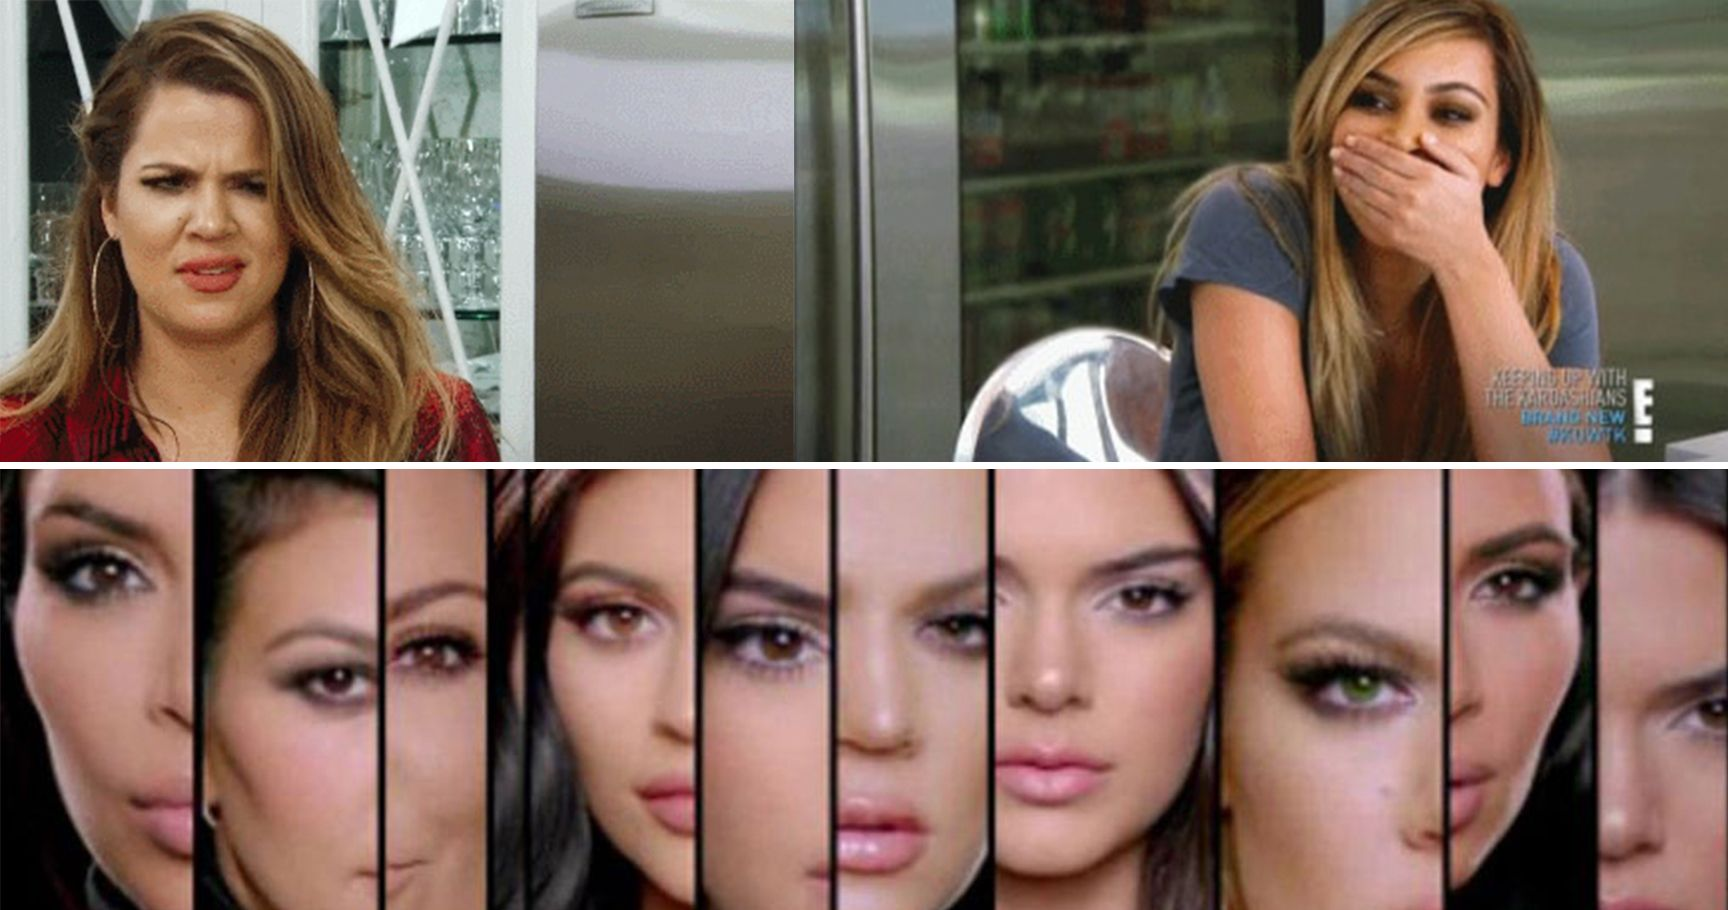 15 Jaw-Dropping Things The Kardashians Have Confessed About Each Other